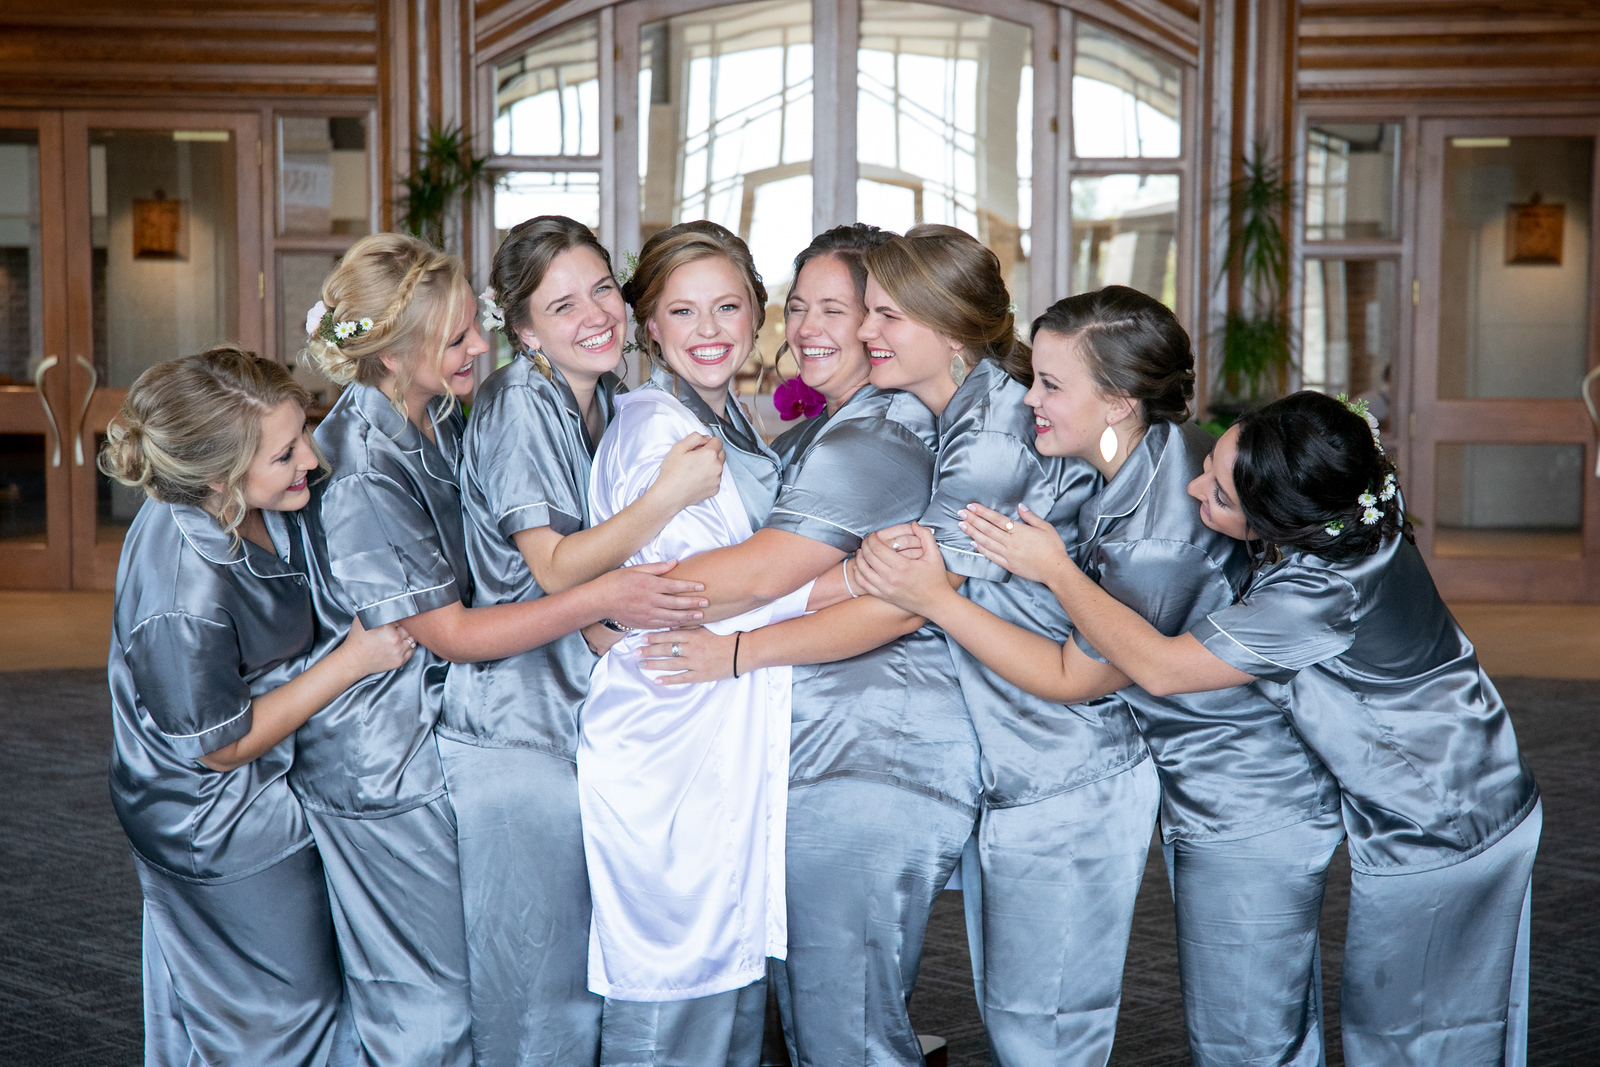 bridesmaids wearing matching silk pajamas all hugging a bride on her wedding day